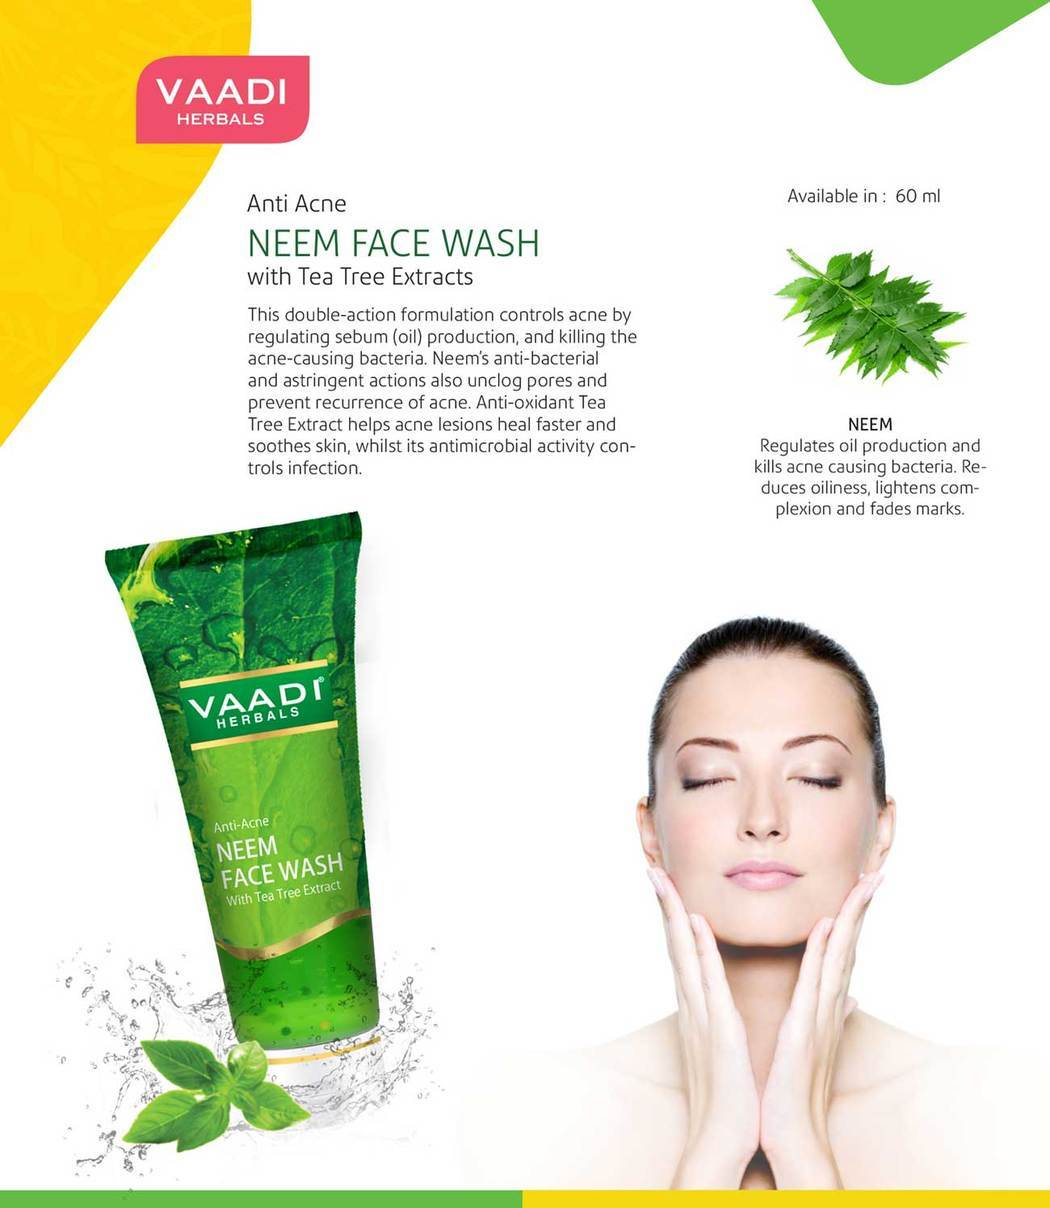 Anti Acne Organic Neem Face Wash with Tea Tree Extract (60 ml/2.1 fl oz)